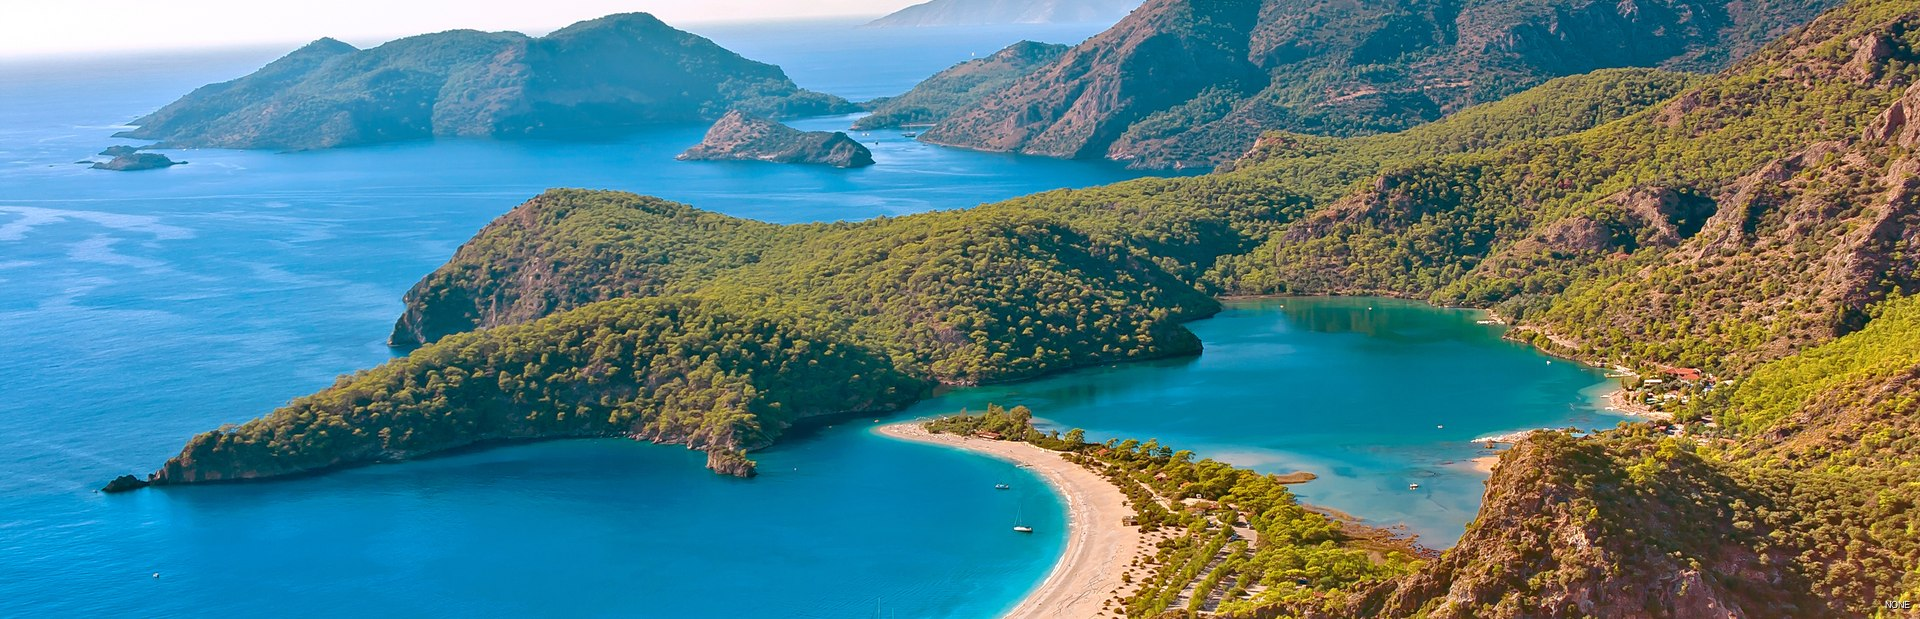 Relax in the Waters of Oludeniz